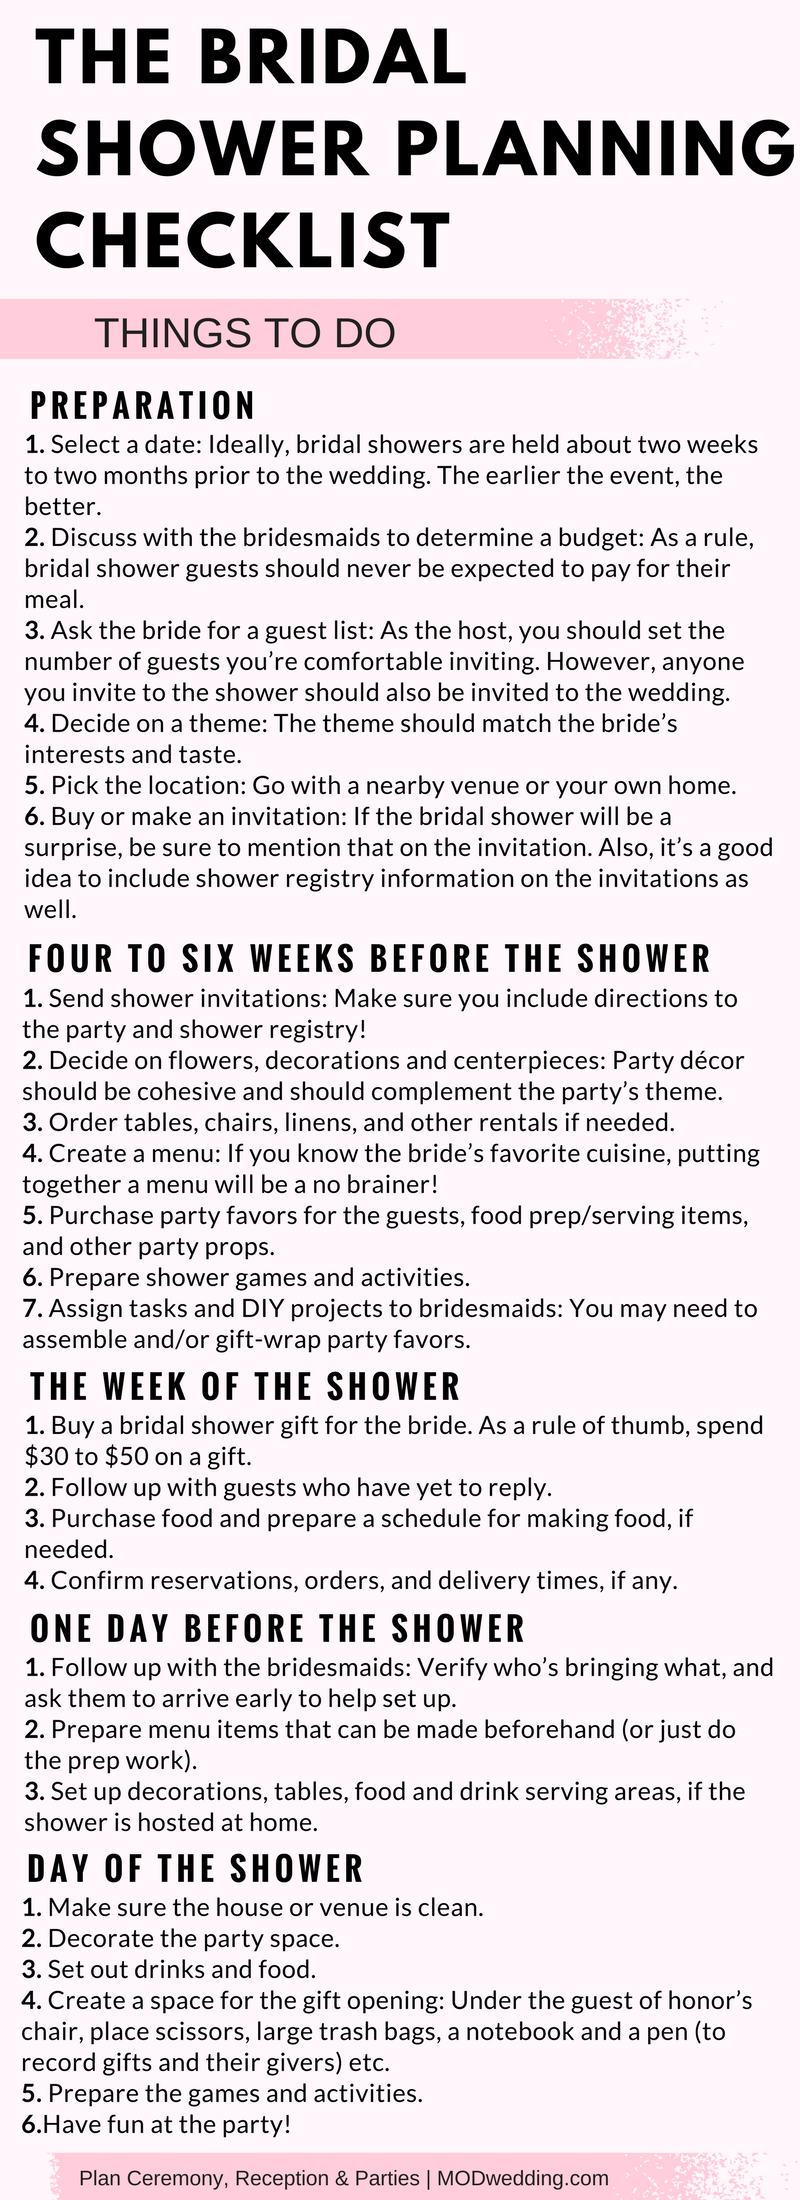 hosting a bridal shower can be fun but it can also be a little nerve racking follow these tips and checklist planner to make it easy